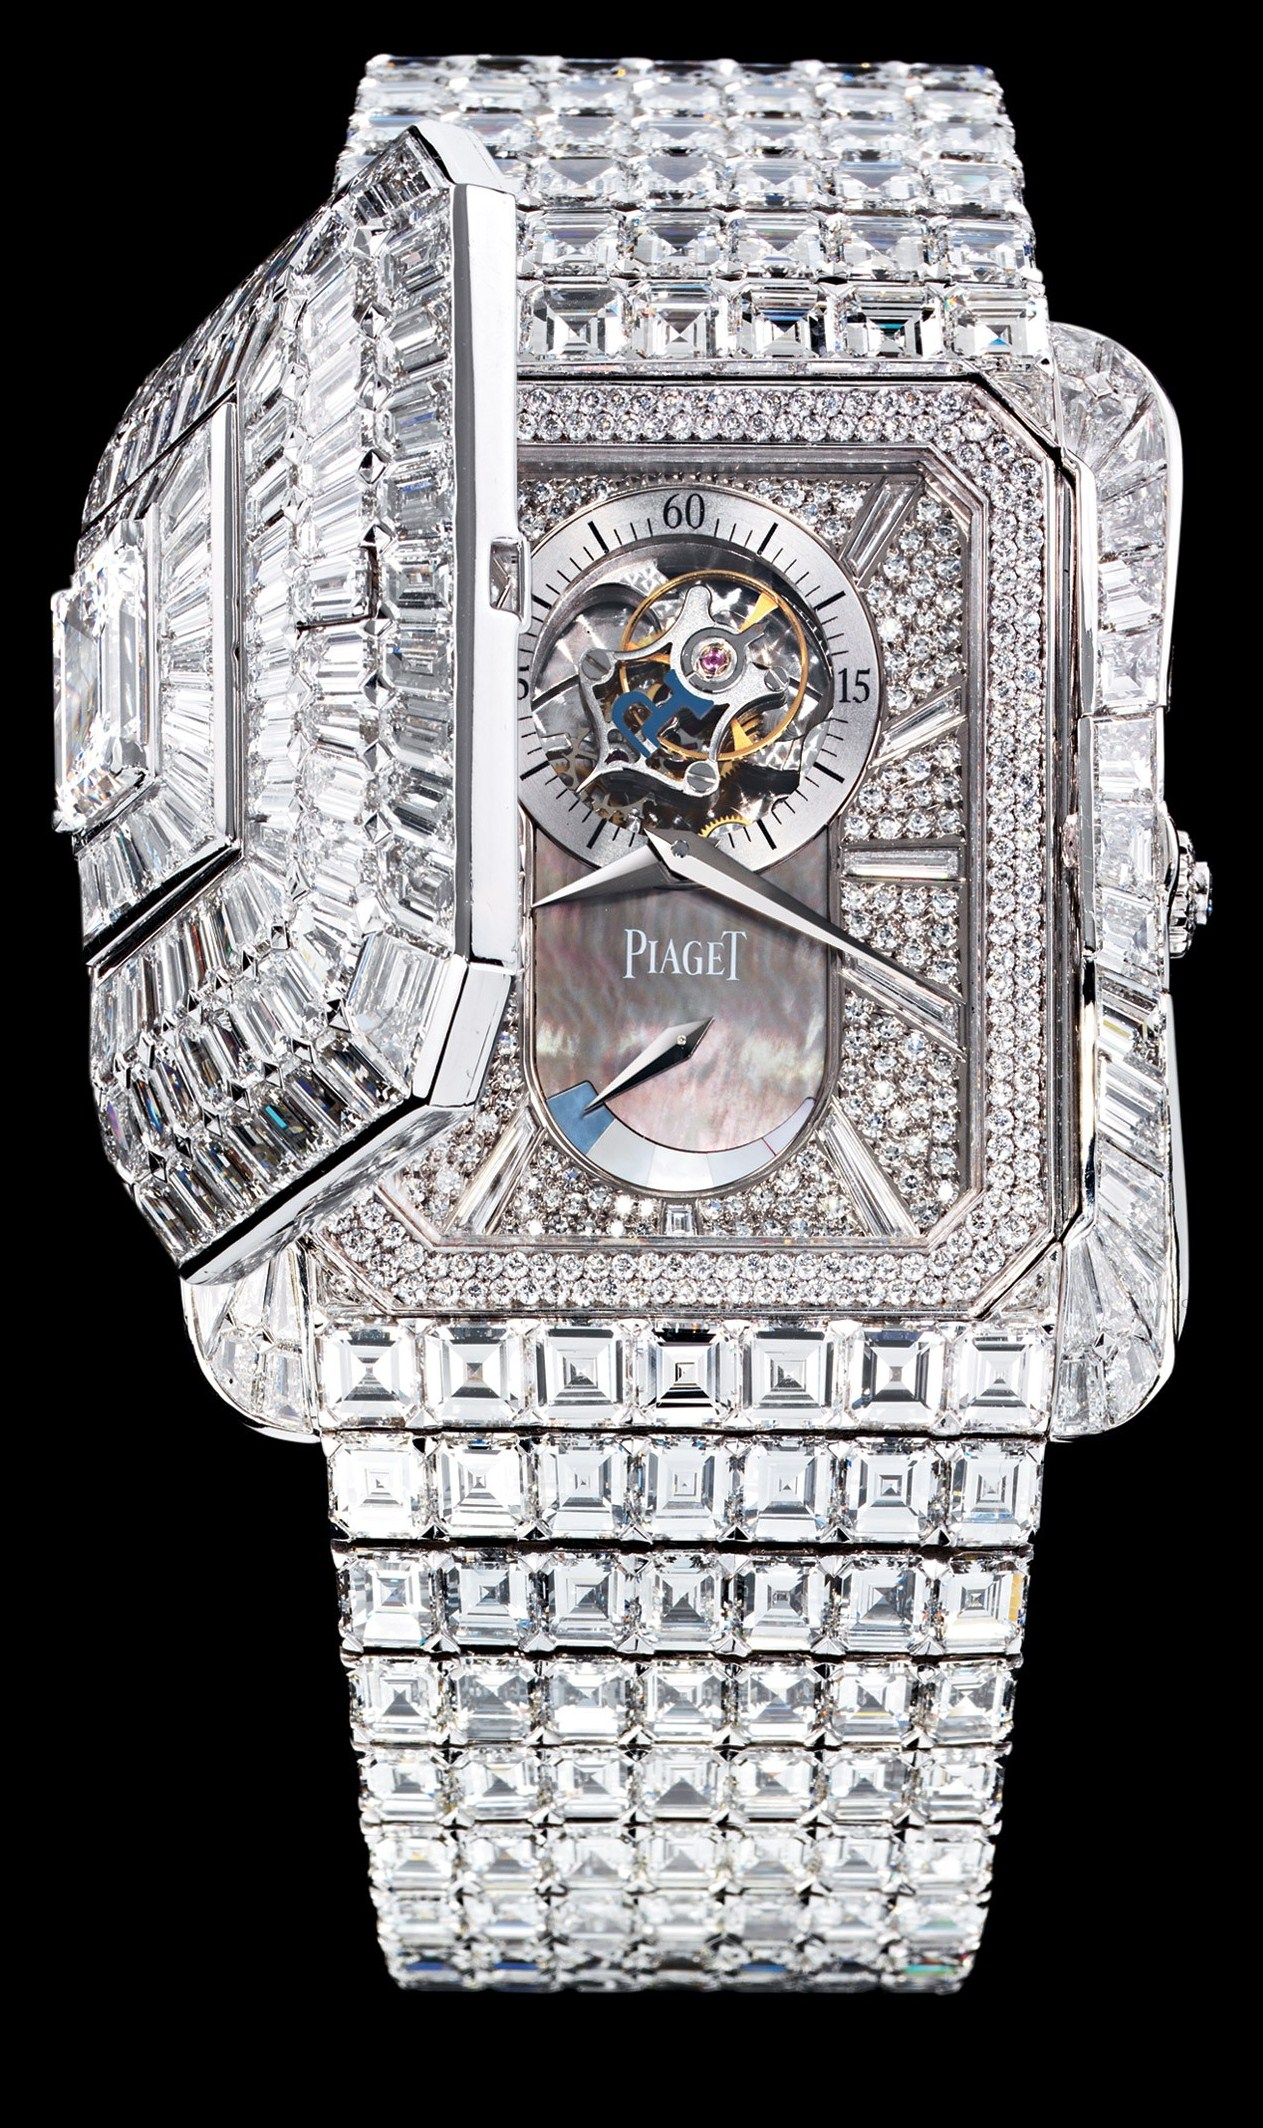 top-5-really-expensive-diamond-crusted-watches-2 (9) Expensive Diamond-Crusted Watches Top 5 Really Expensive Diamond-Crusted Watches top 5 really expensive diamond crusted watches 2 9